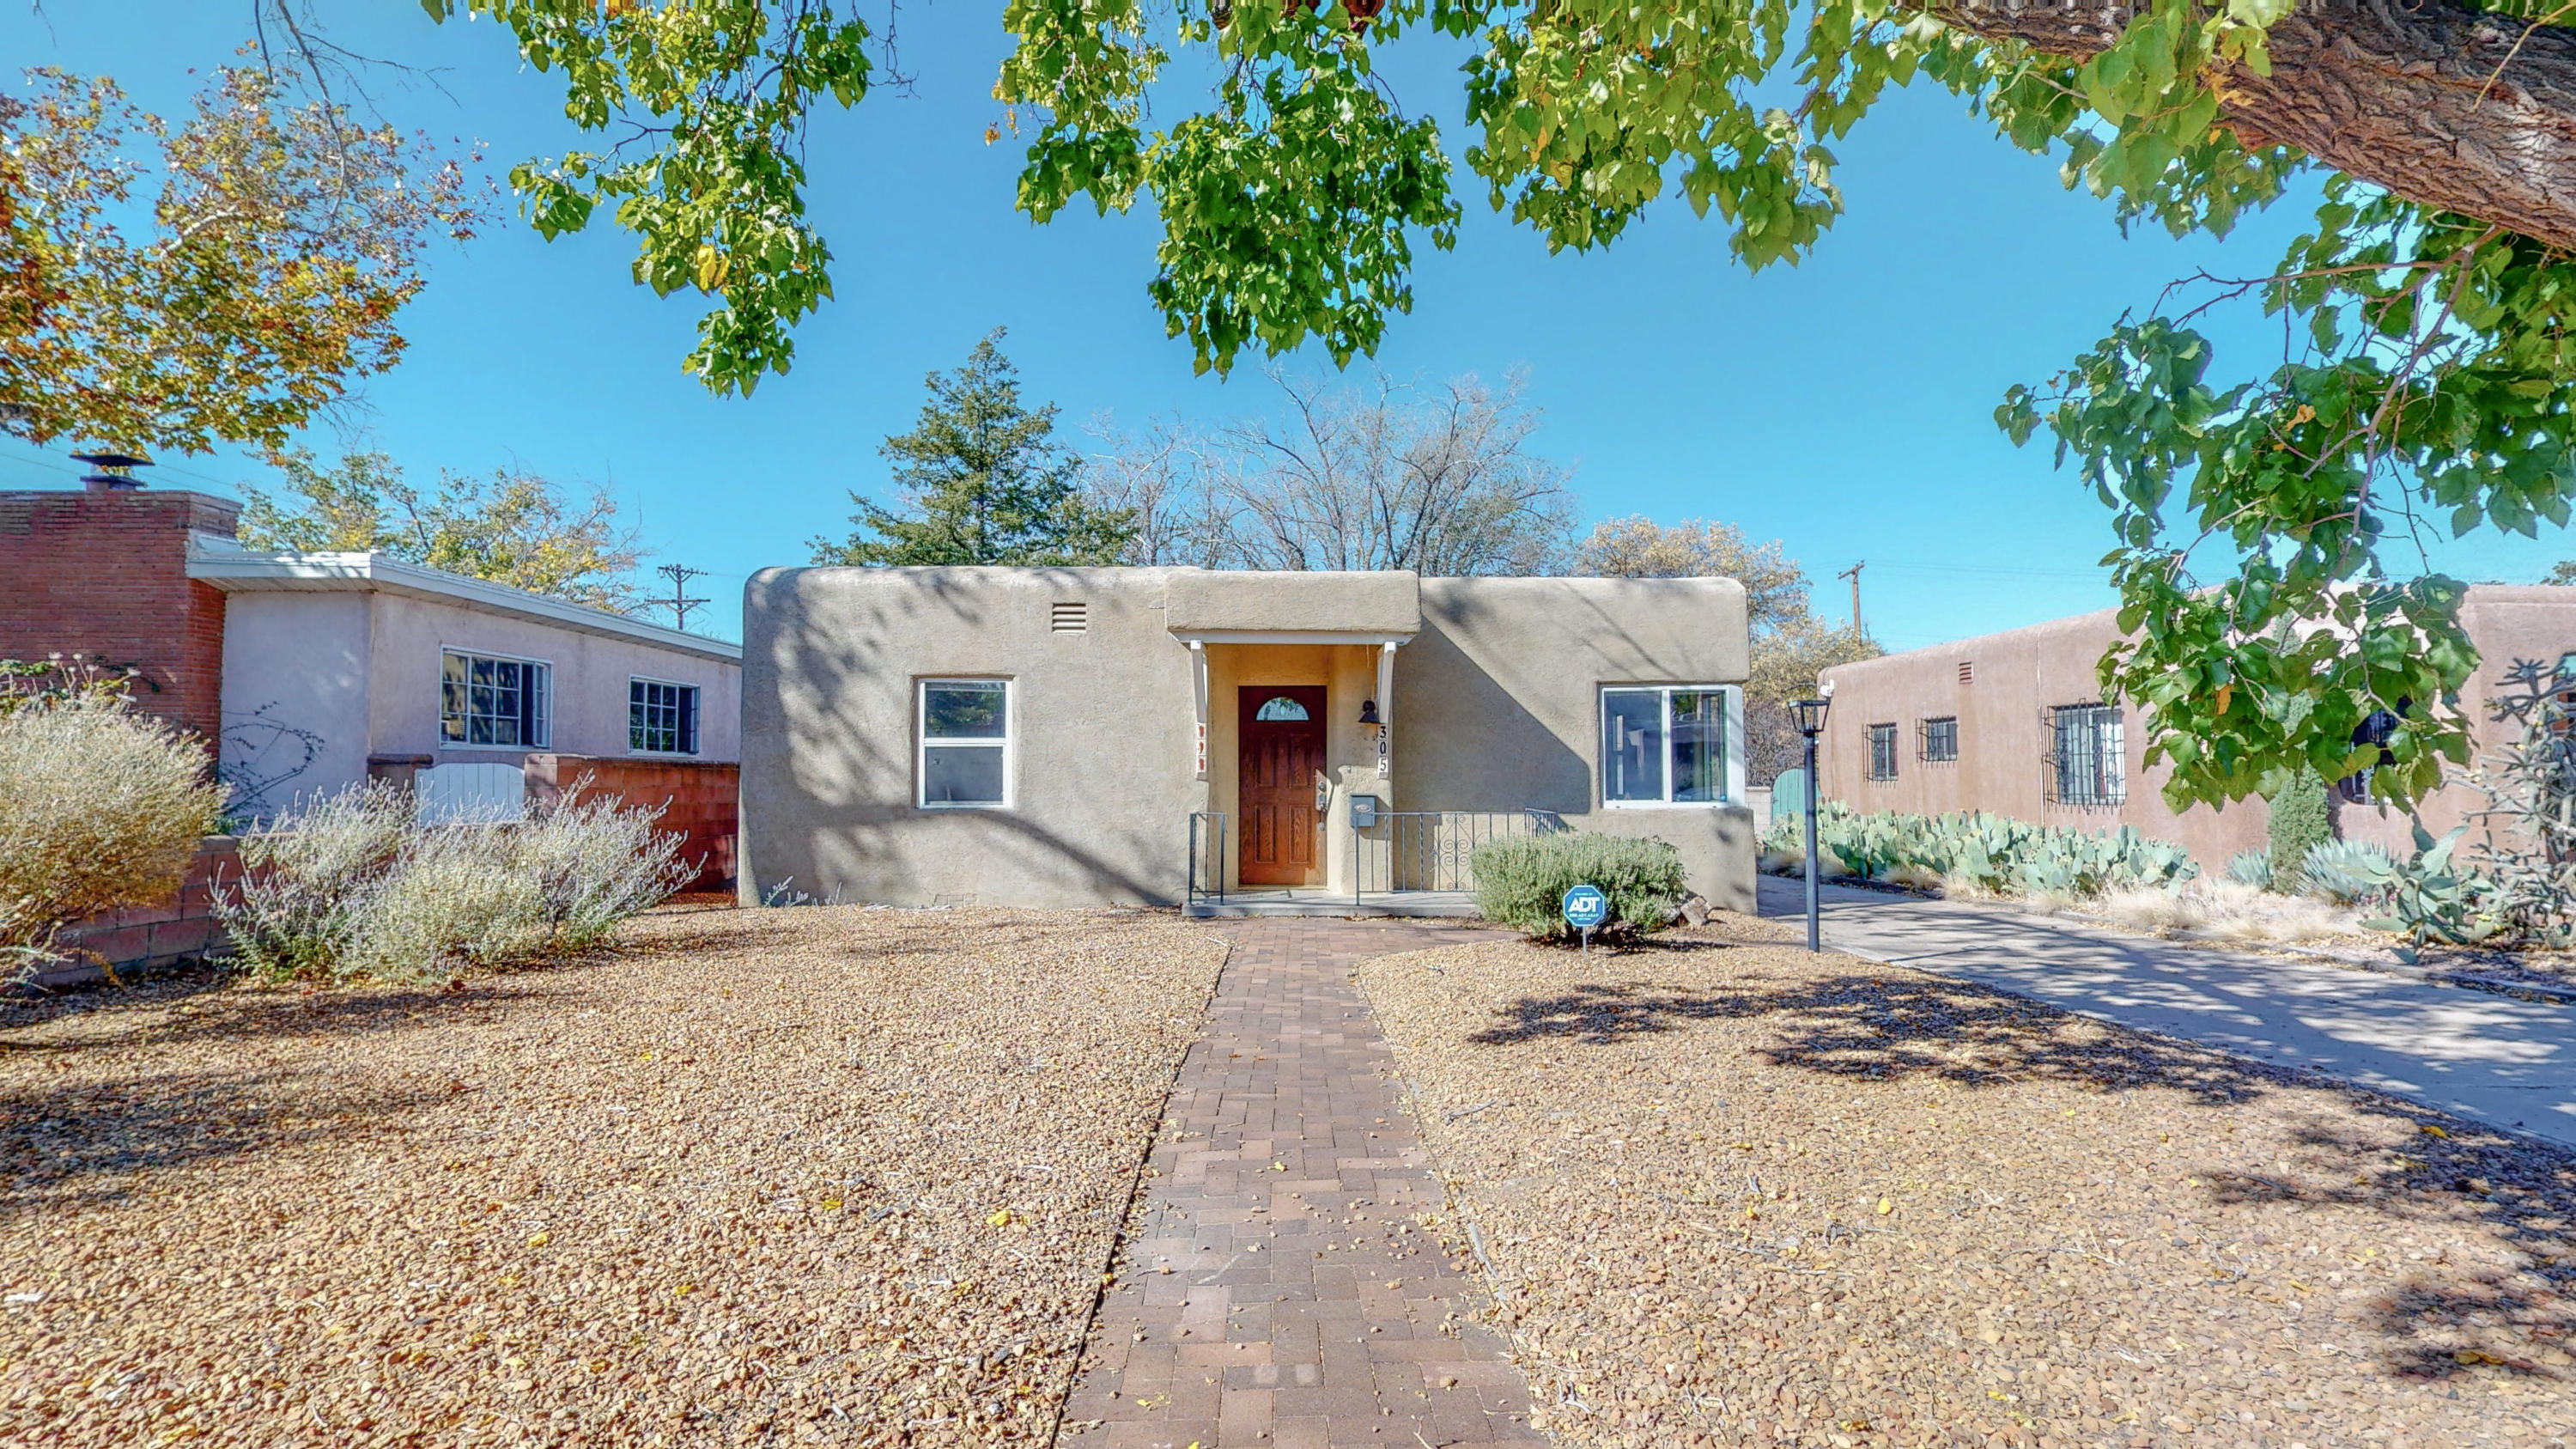 Move-In Ready! This sweet 2 bd, 1 bath home in the UNM area boasts wood floors and updates throughout. Kitchen has  new counter tops, kitchen cabinets and appliances. Tankless water heater will save you money! Plenty of room in the detached garage and large backyard. Newer windows and stucco.